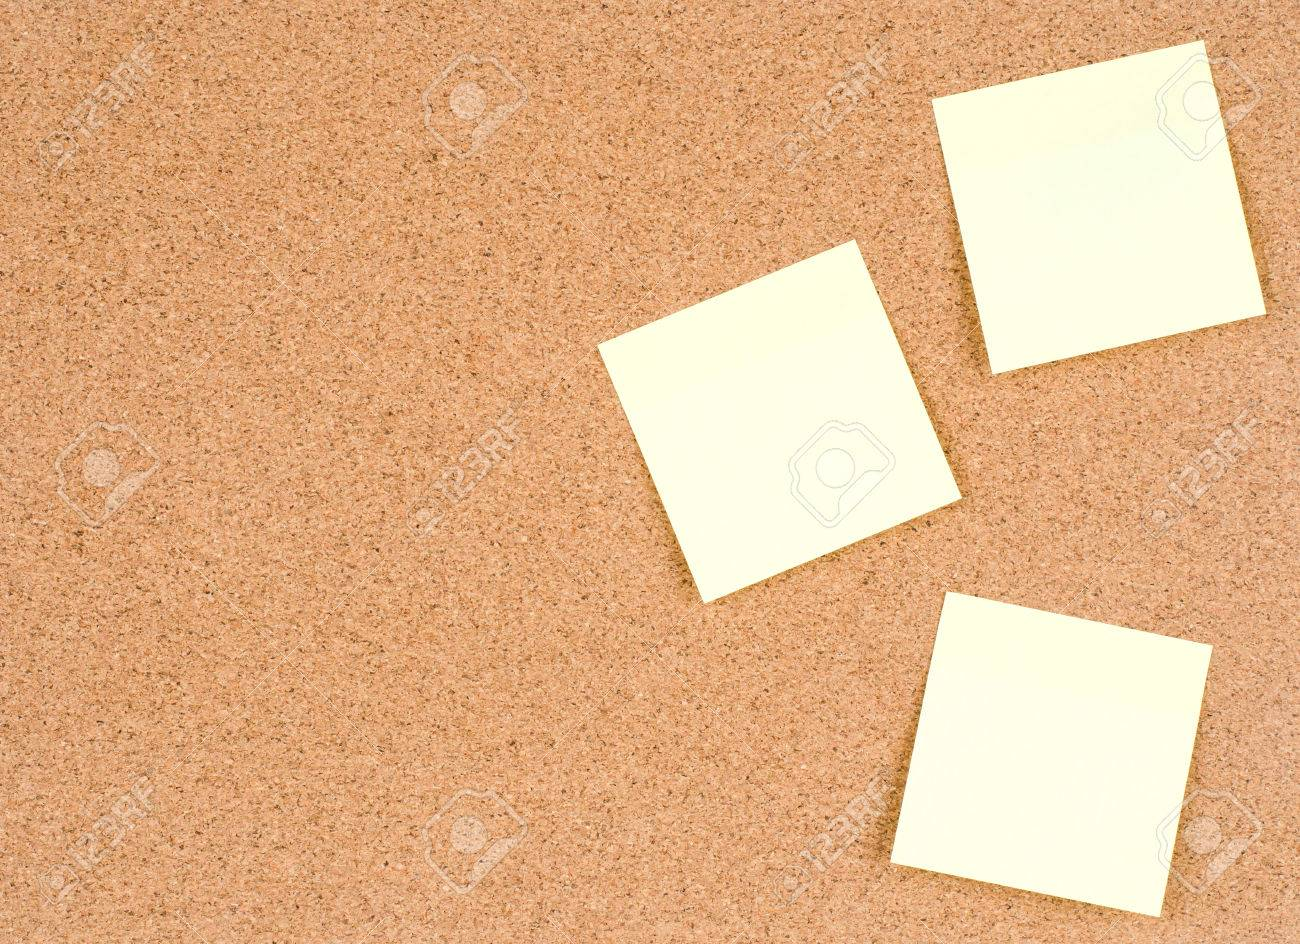 Cork Bulletin Board Backdrop Cork Bulletin Board Images Stock Pictures Royalty Free